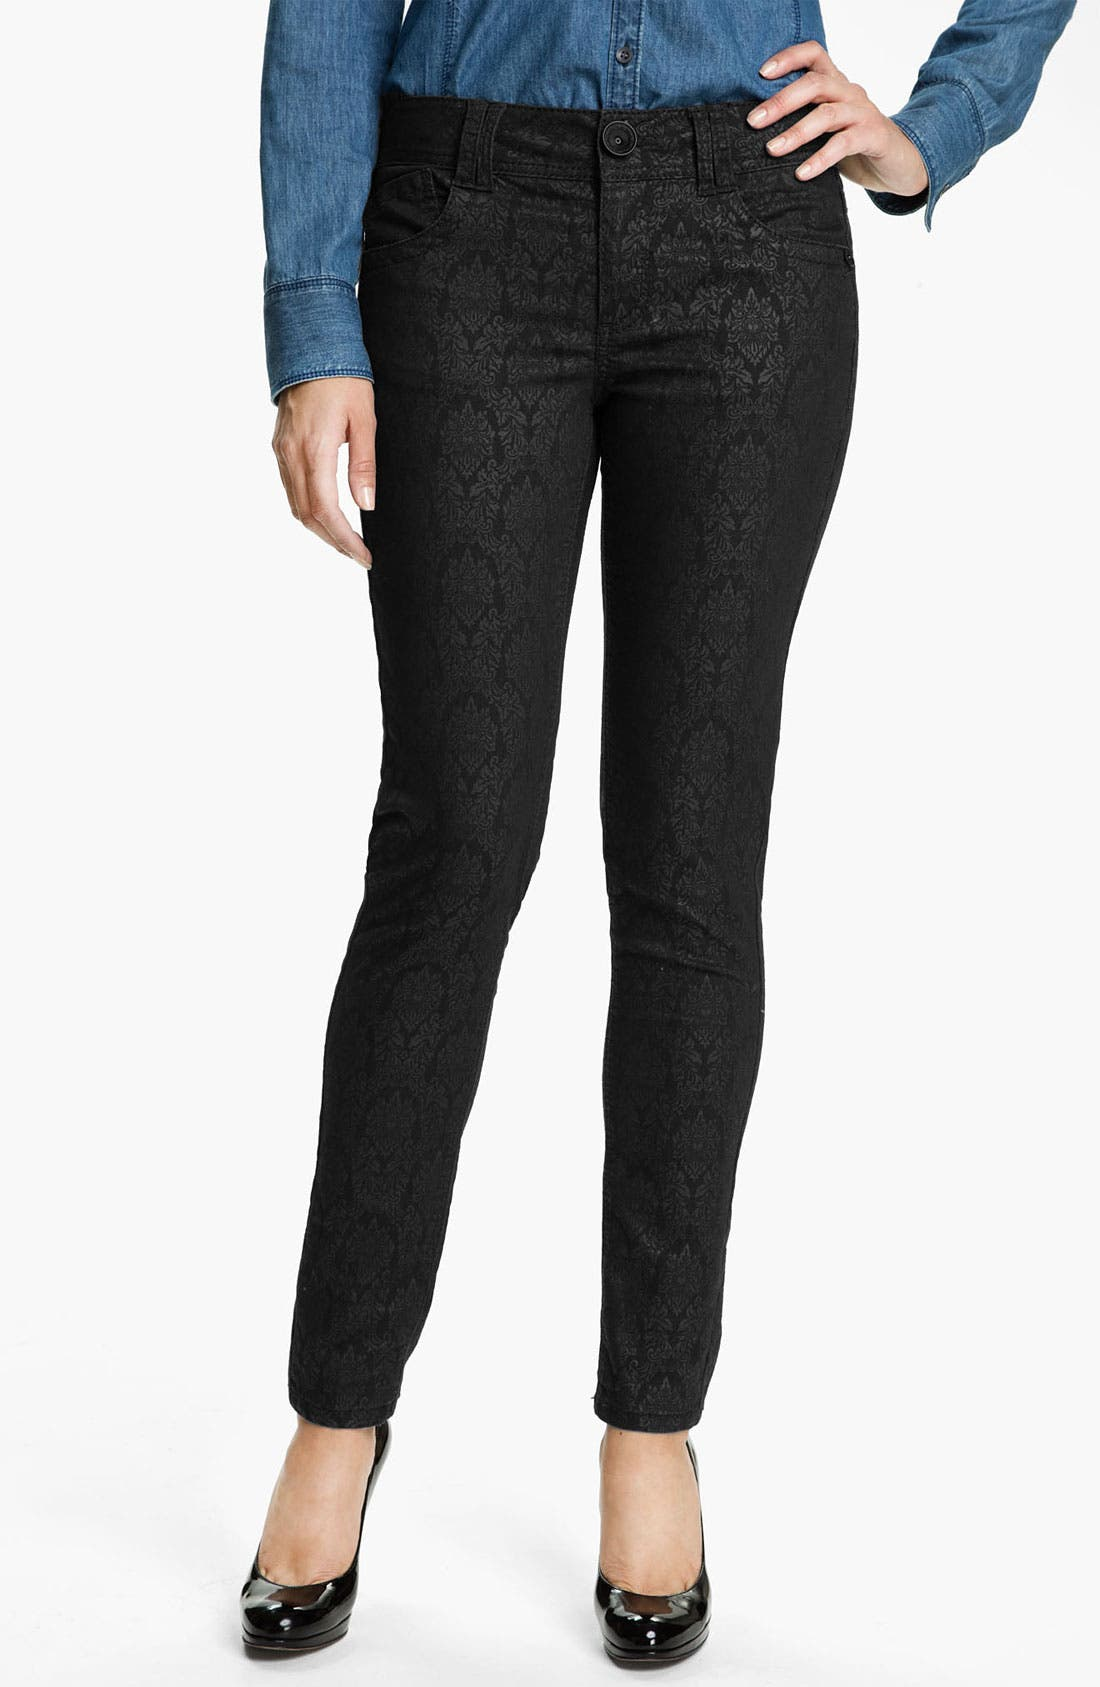 Main Image - Wit & Wisdom Brocade Print Skinny Jeans (Black) (Nordstrom Exclusive)